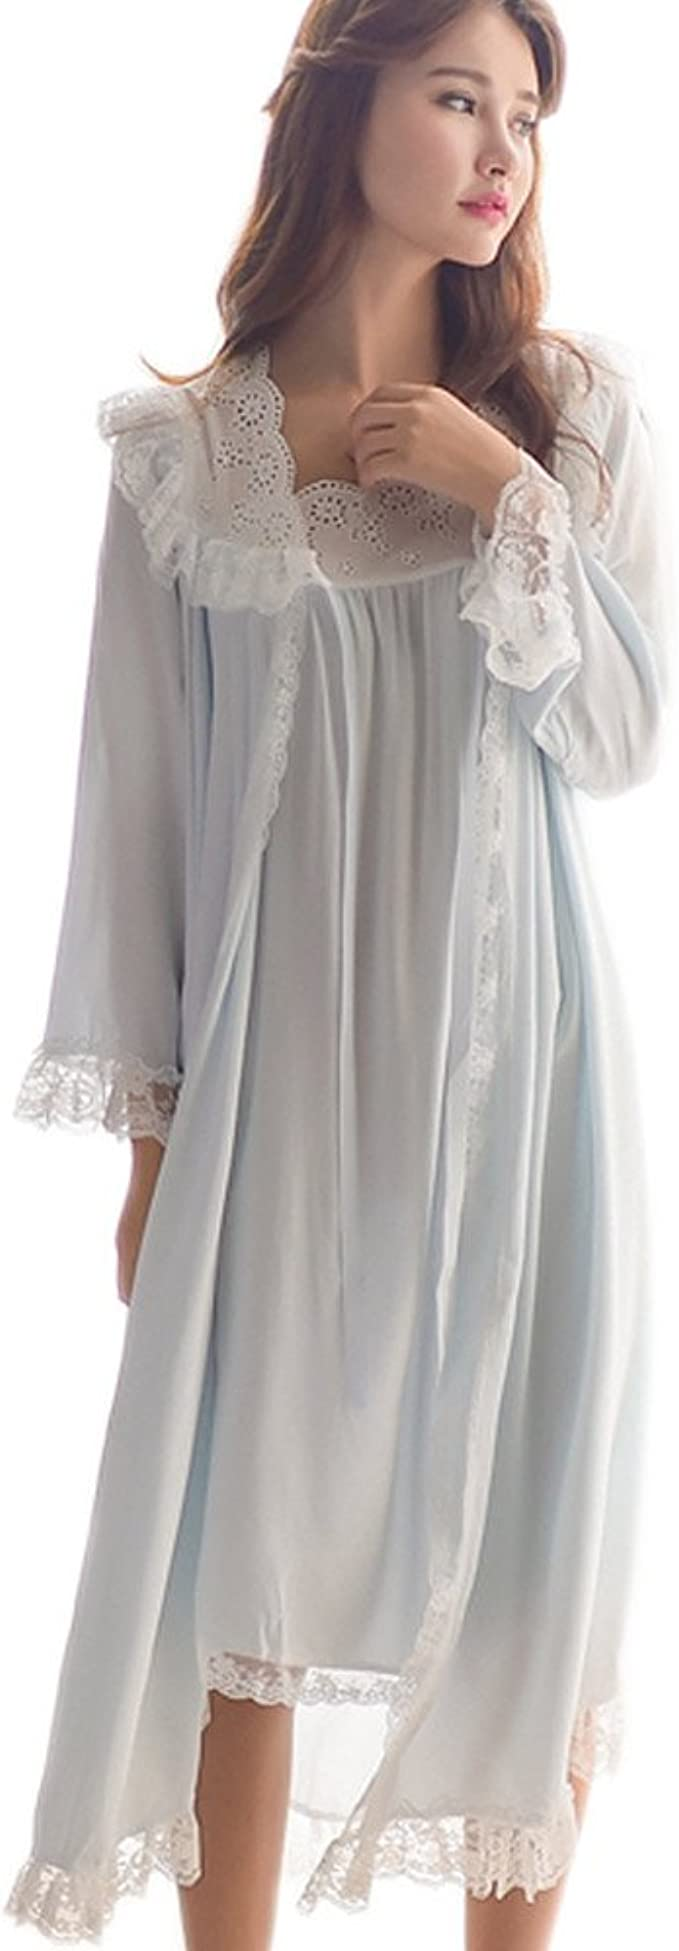 Vintage Nightgowns, Pajamas, Baby Dolls, Robes Womens Victorian Nightgown Vintage 2 pcs Sleepwear Nightdress Robes Royal Pajamas Lounge Wear $34.99 AT vintagedancer.com